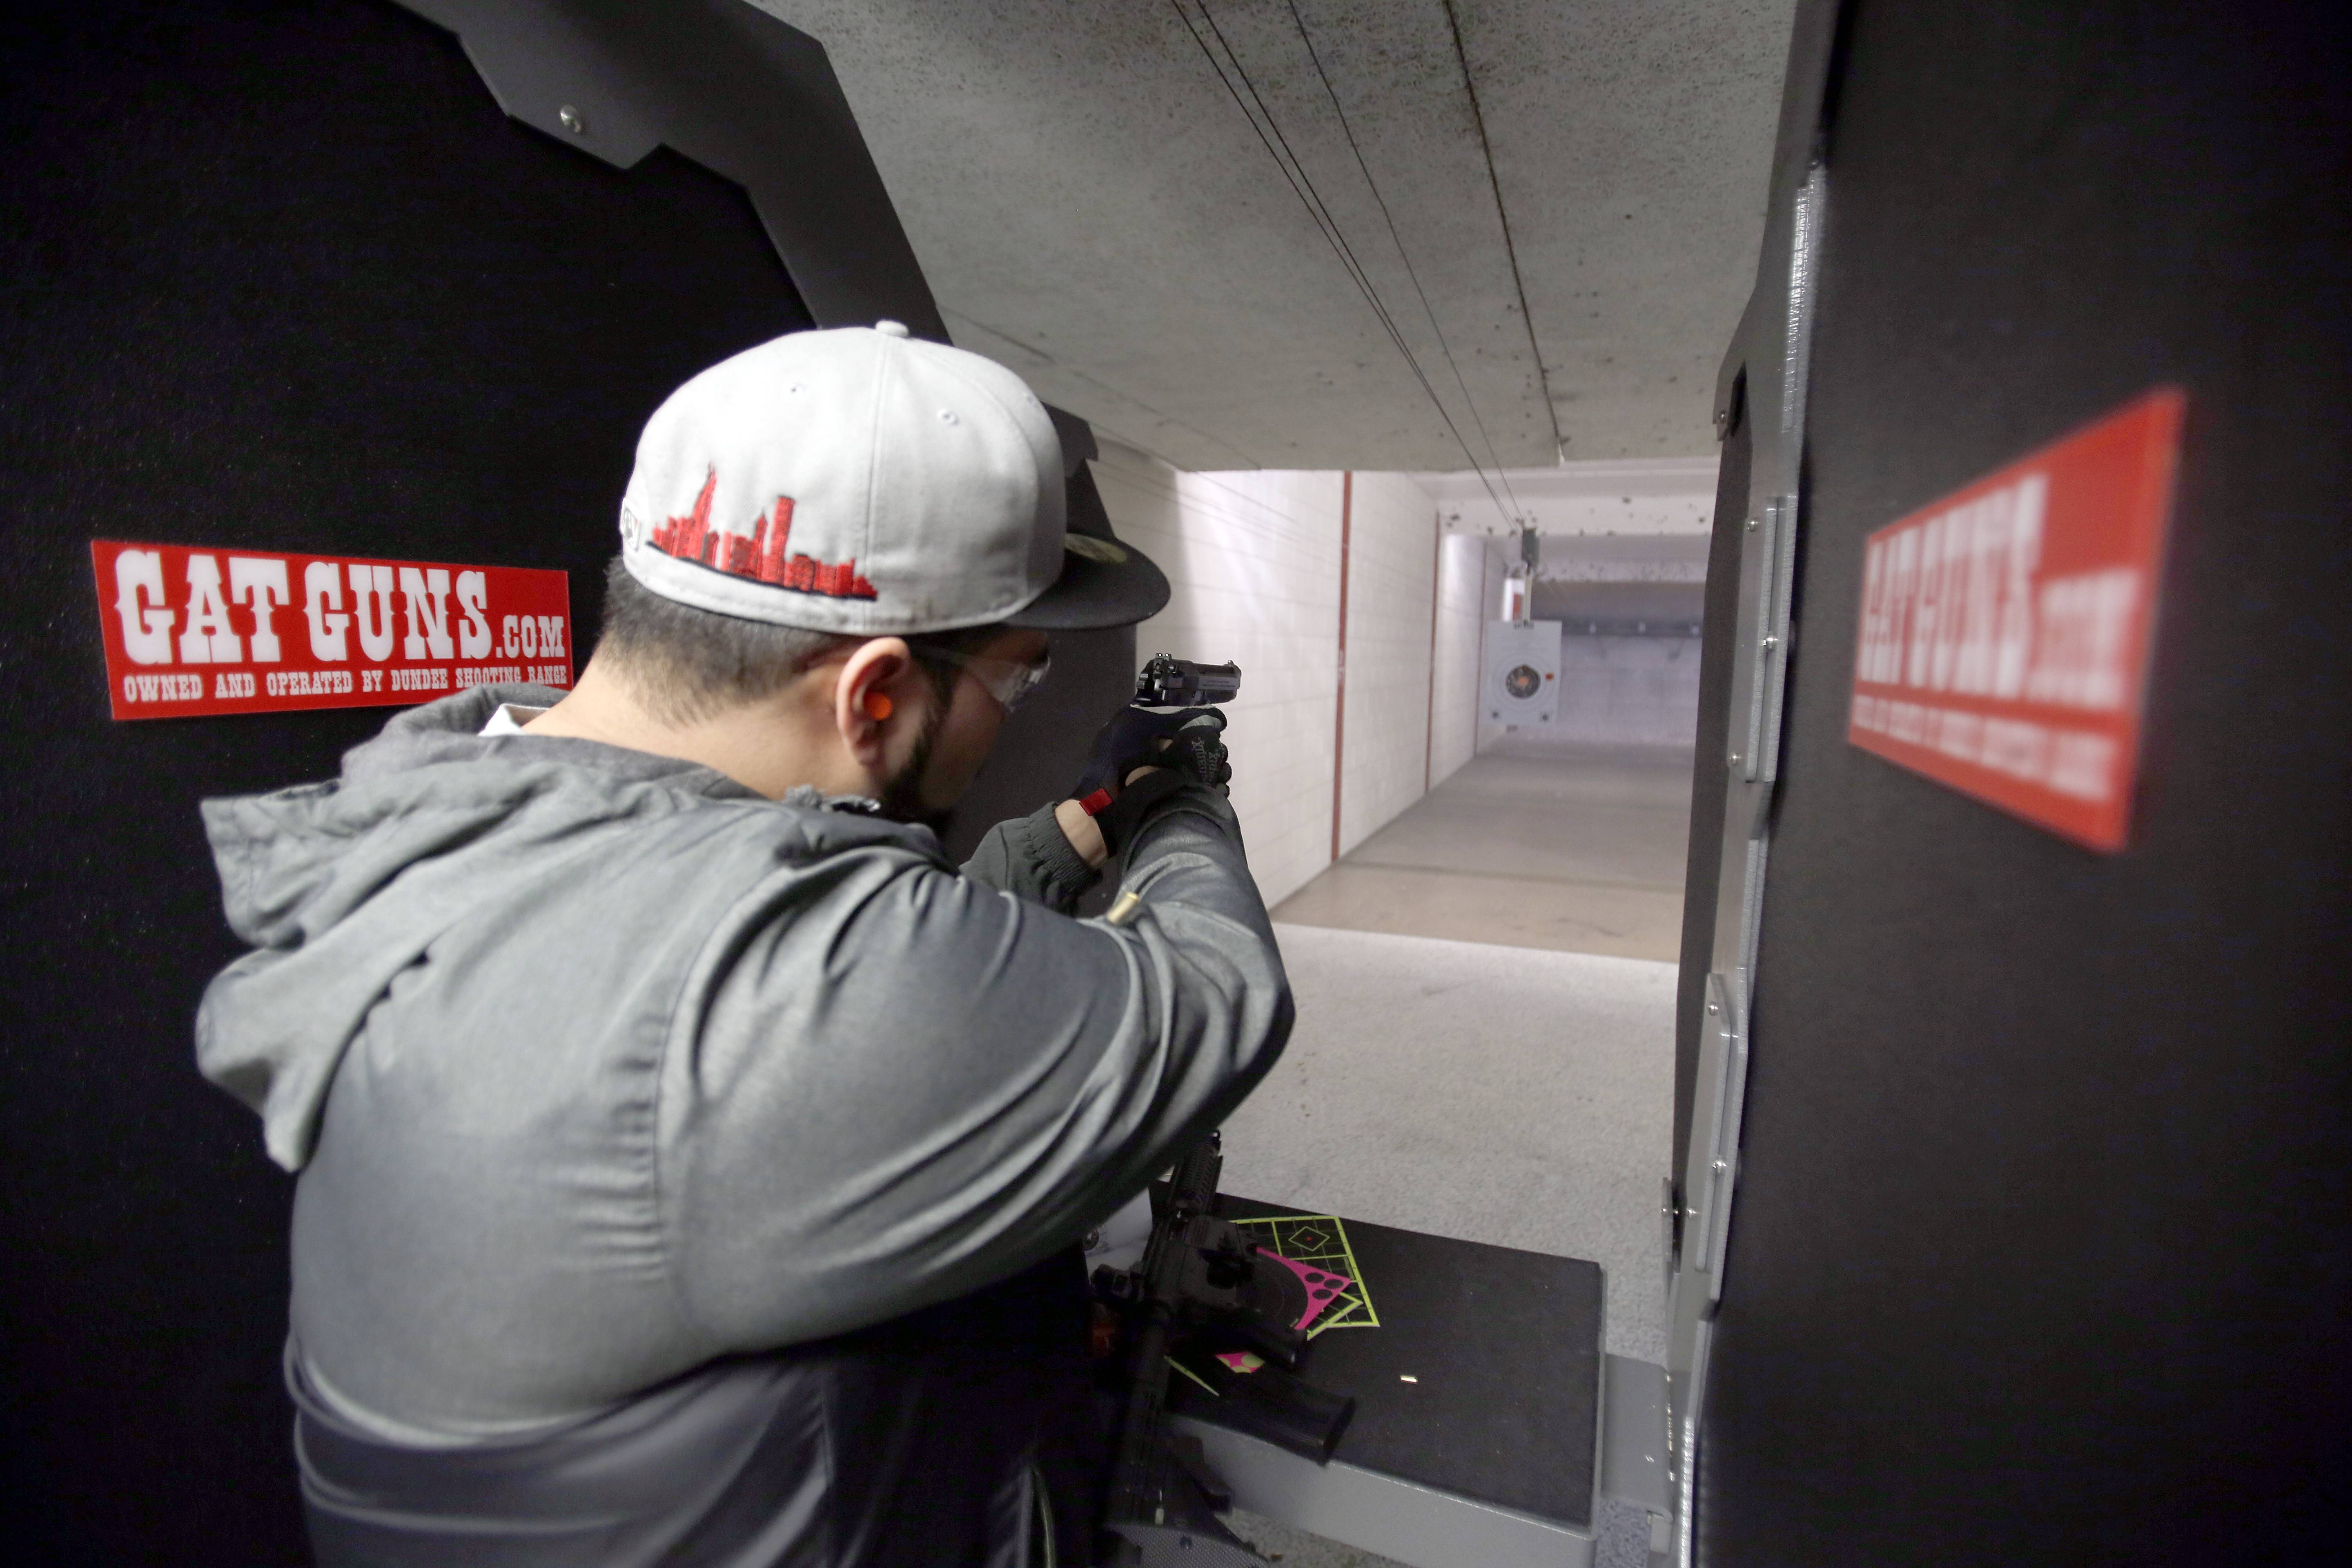 Jaime Olivas, 24, of Bellwood, practices at the range at GAT Guns in East Dundee. Local ranges have seen a significant increase in usage after Illinois passed a concealed carry law last July.